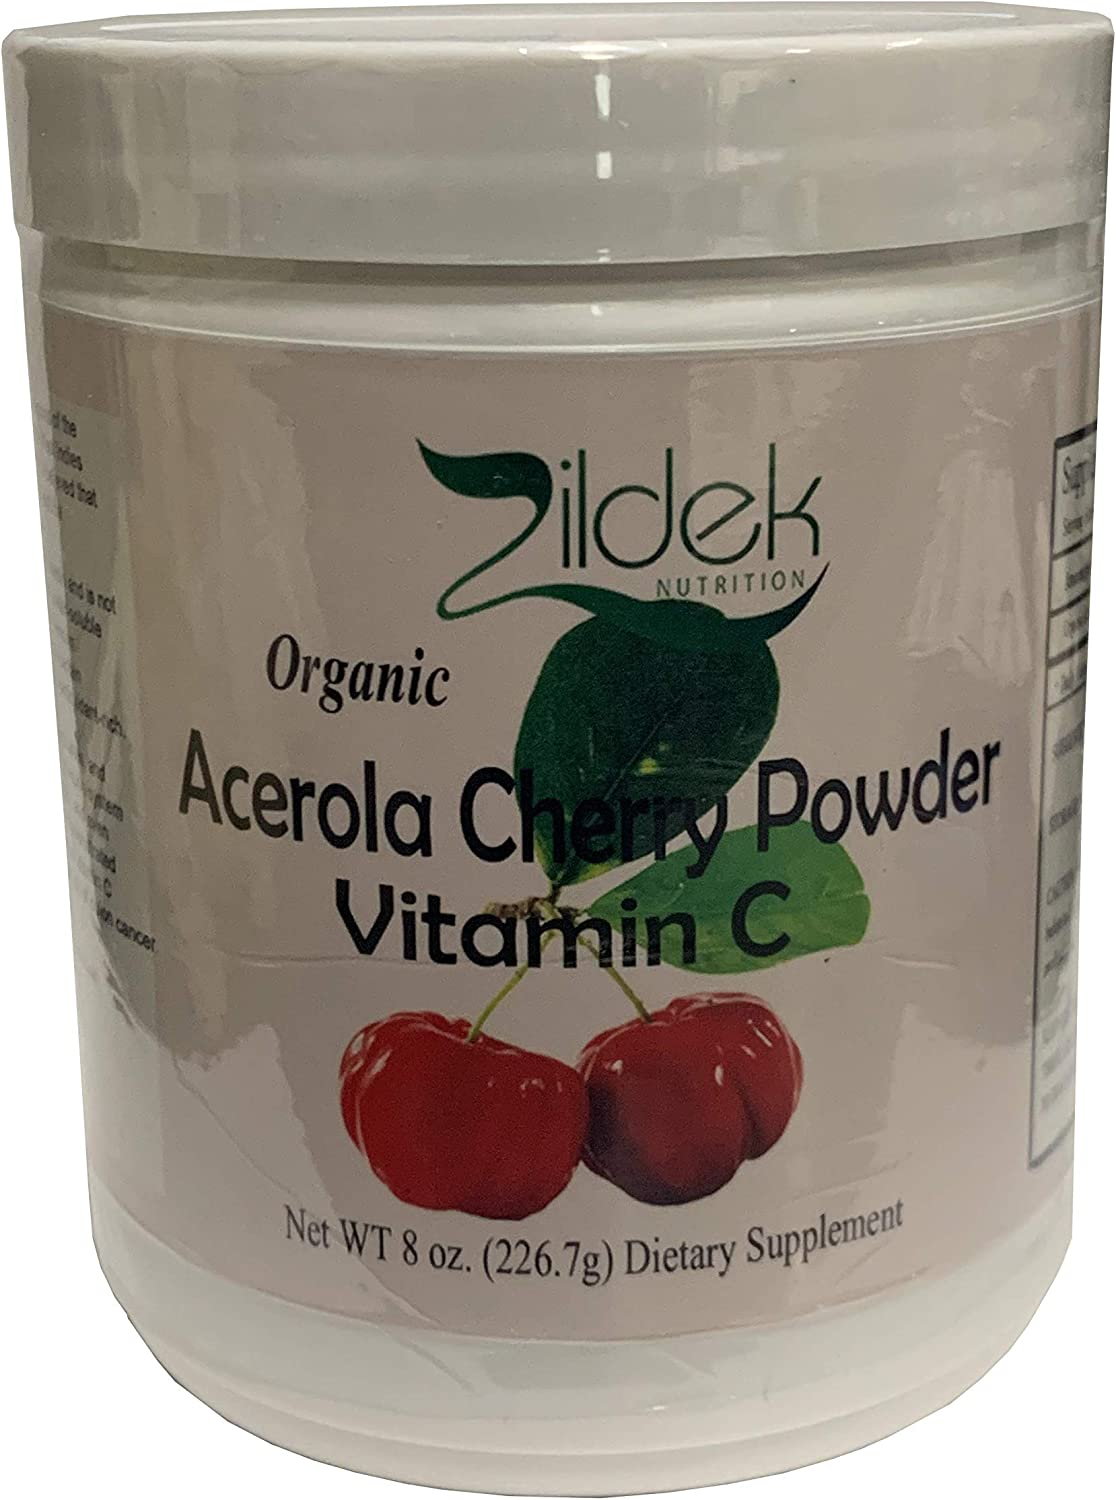 Acerola Cherry Powder Vitamin C 8 oz